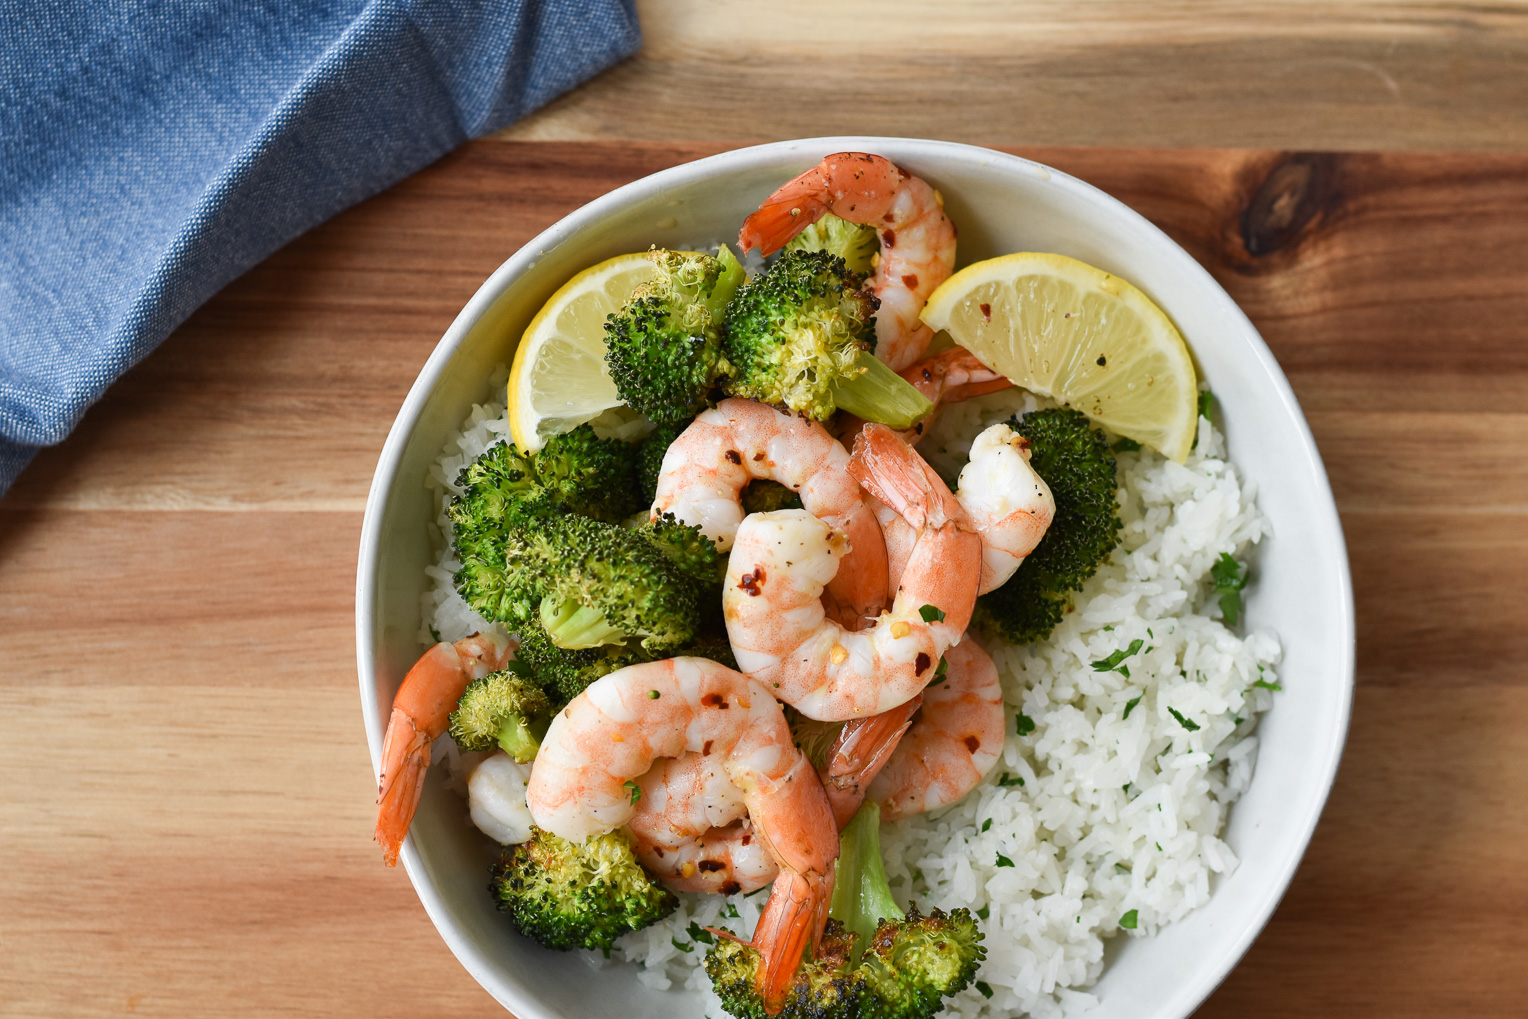 Lemon Roasted Shrimp with Broccoli and Rice